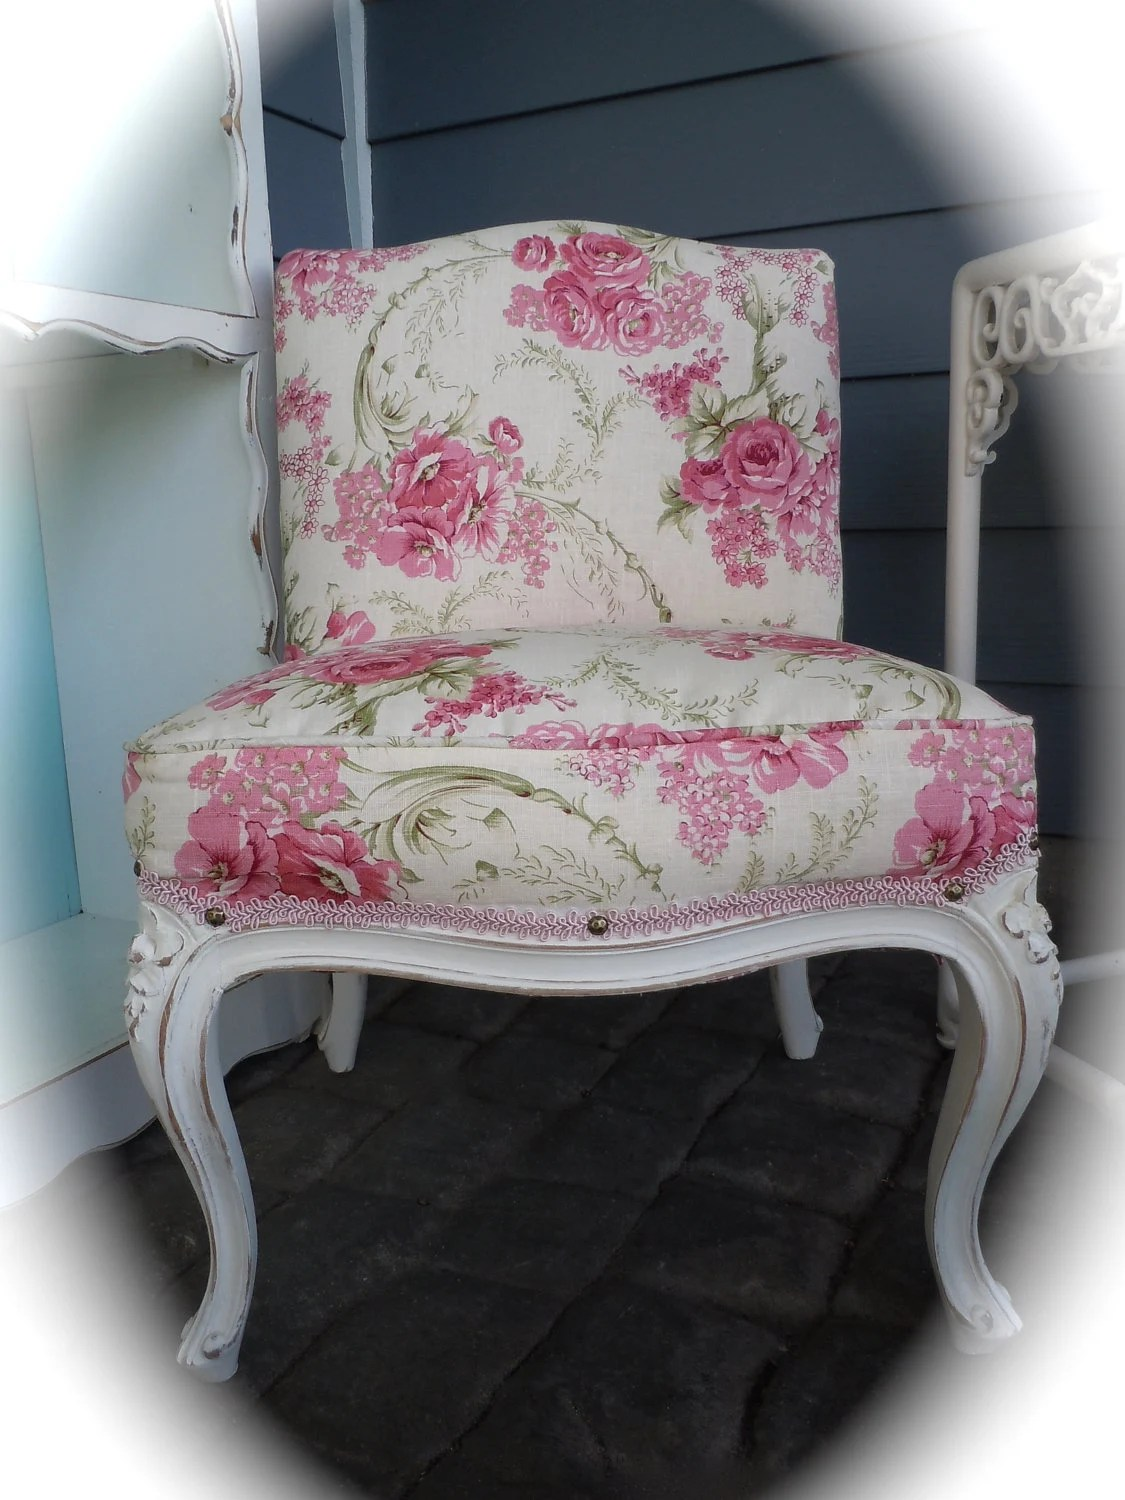 Shabby Chic Vintage Upholstered Slipper Chair in White Pink